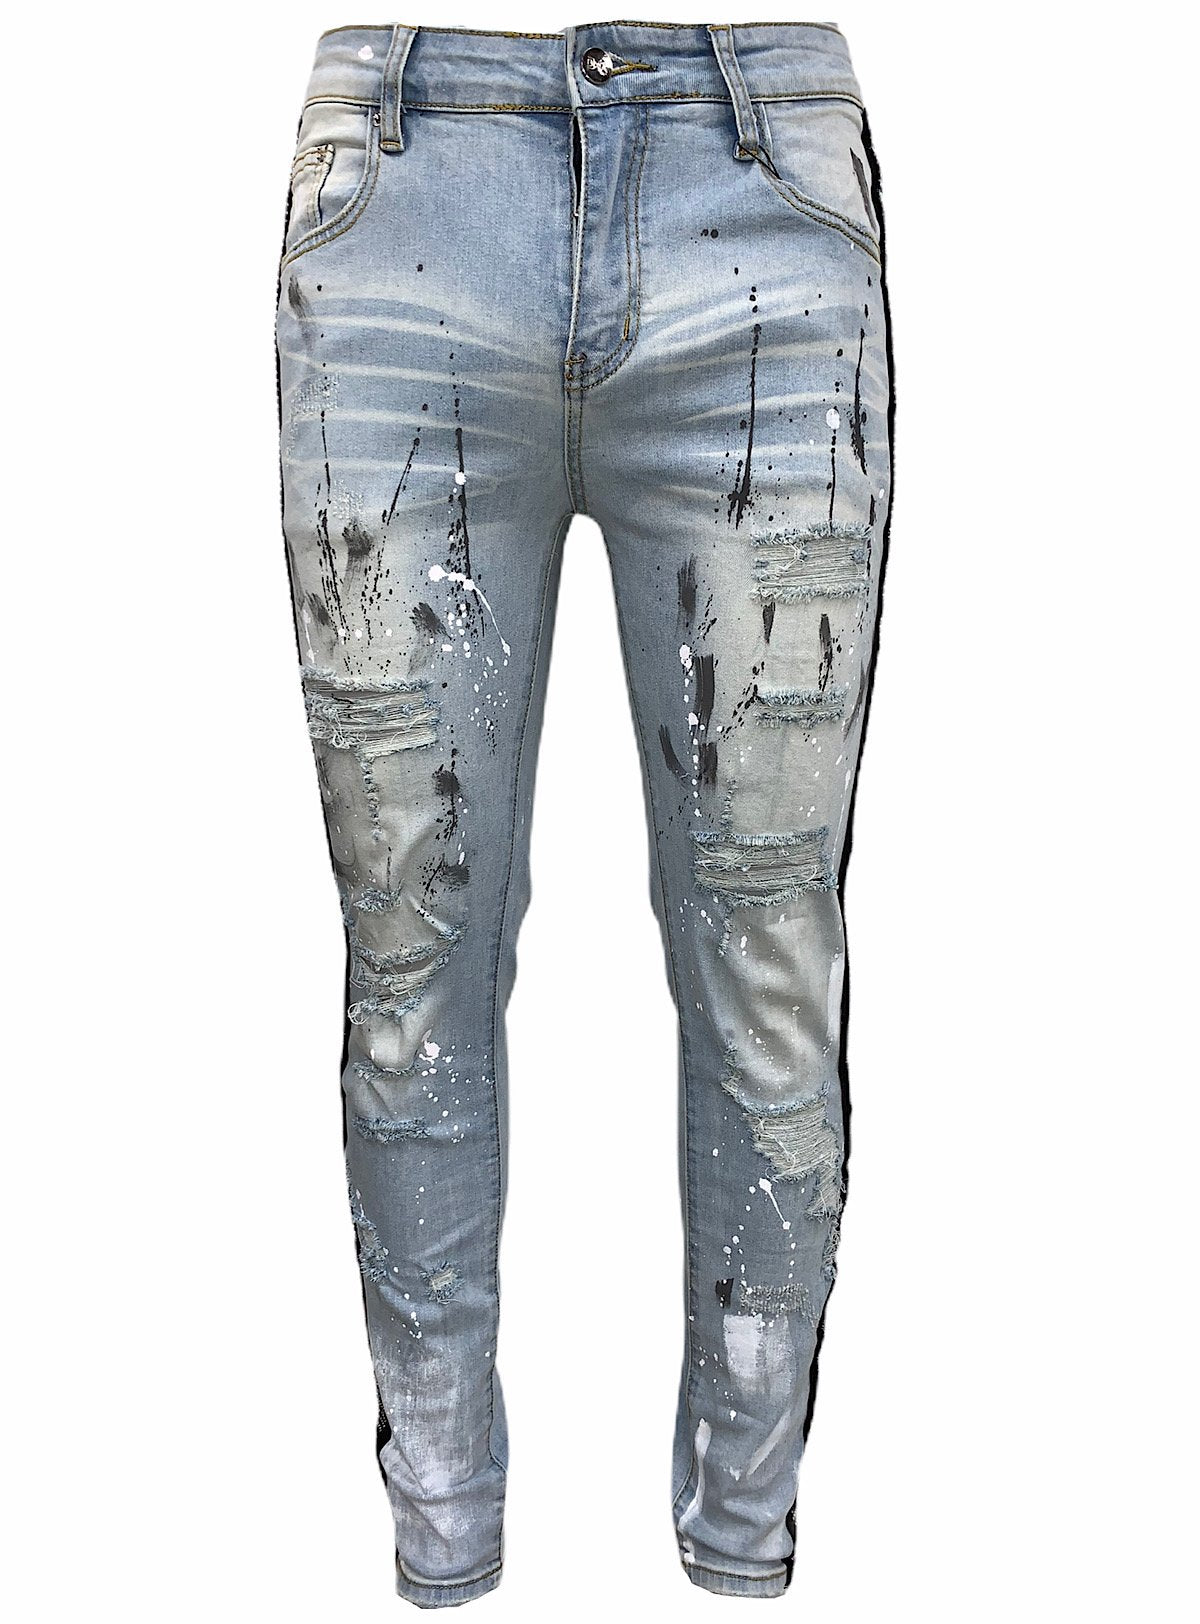 DNA Jeans - Light Blue And Multi Color Stones - PL06